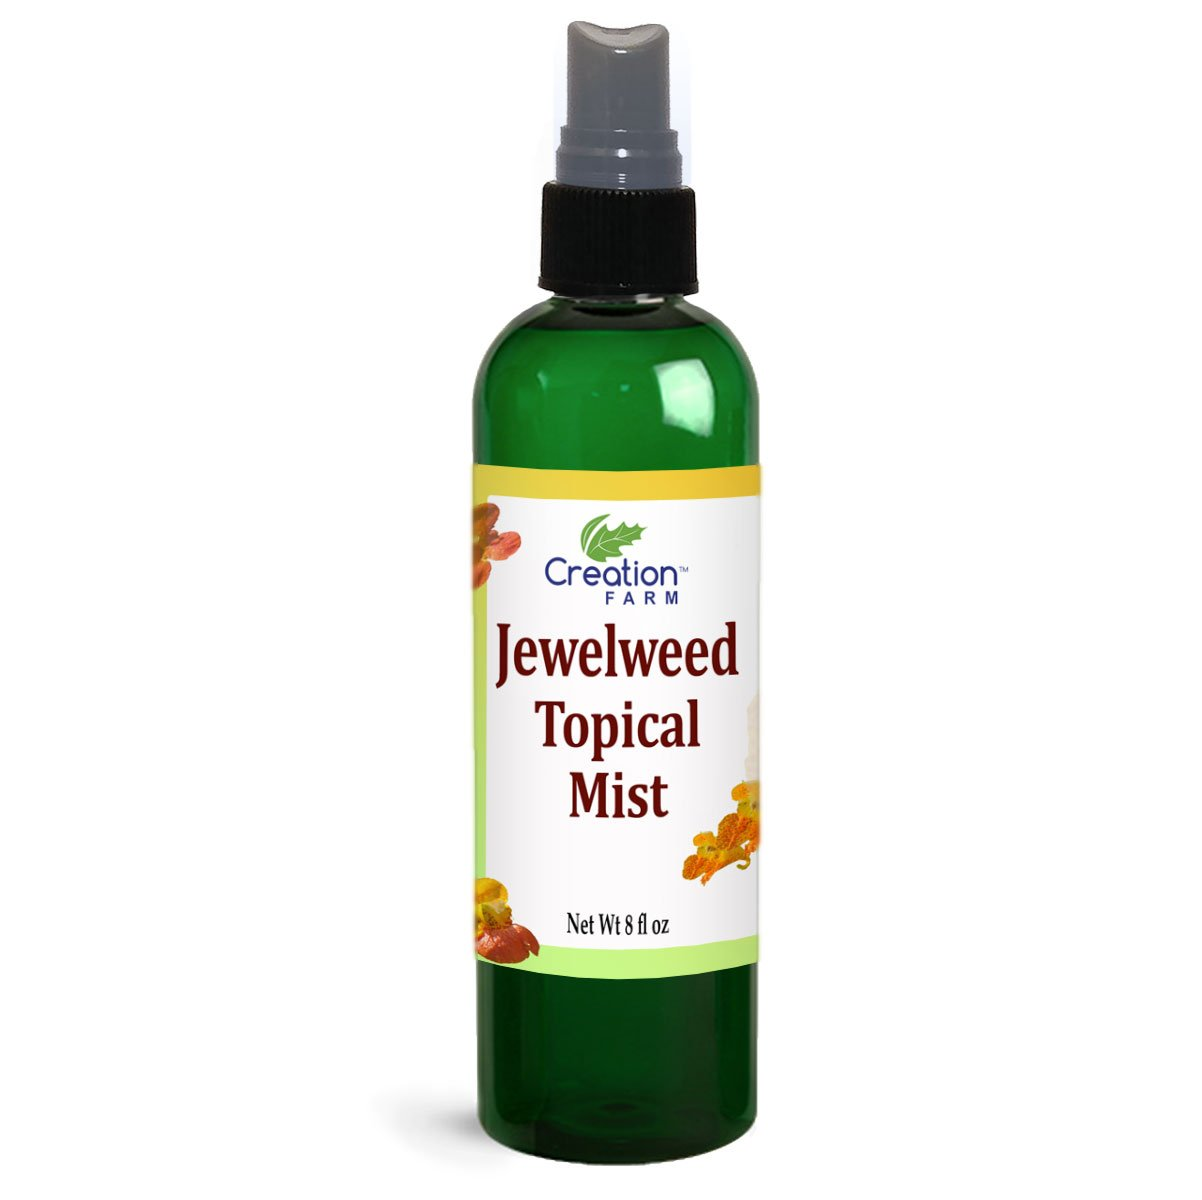 Jewelweed Spray - Itchy Skin Relief Remedy for Poison Ivy Oak LARGE 8 OZ SIZE Allergy, Bug Bites, Bee Stings, Rash - All Natural Botanical base of Plant Extracts